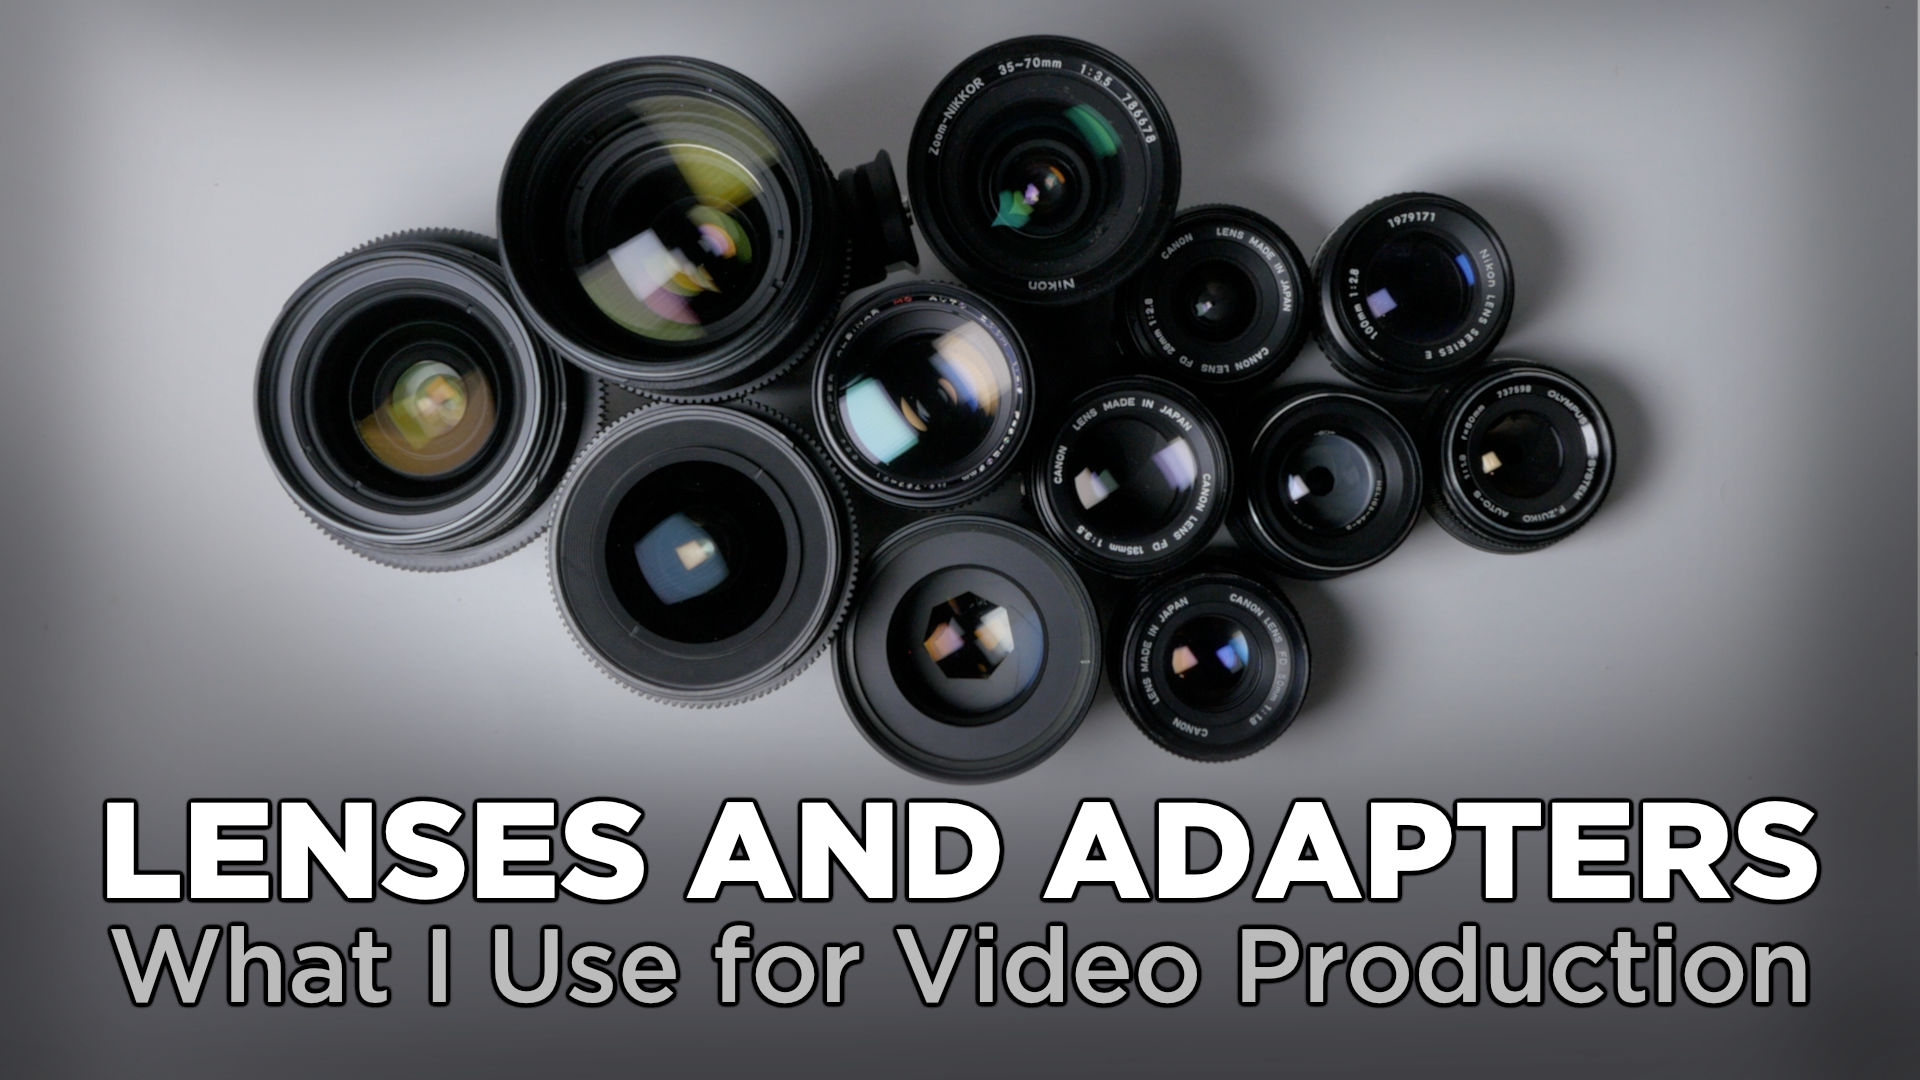 Lenses and Adapters I Use for Video Production